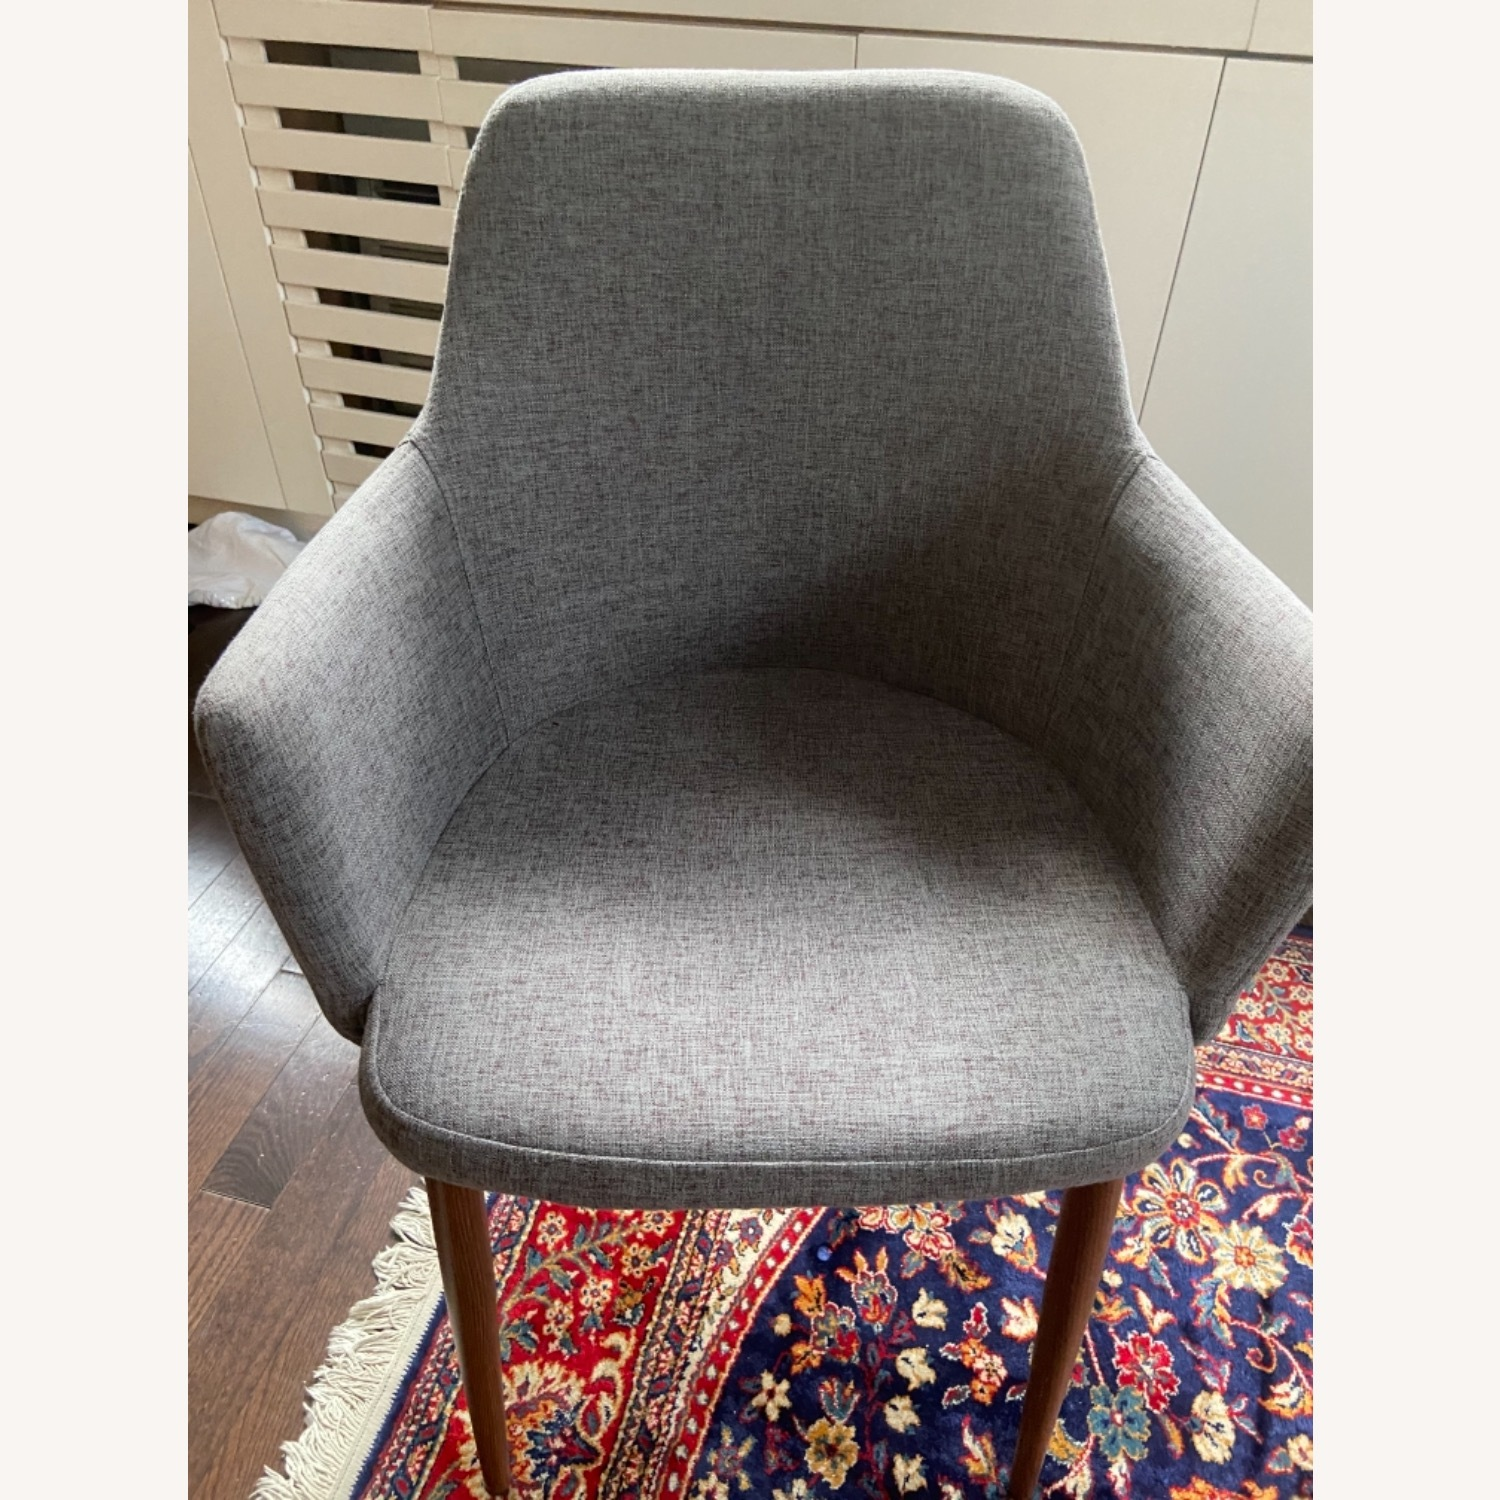 Wayfair 2 Accent/Dining Grey Chair - image-1